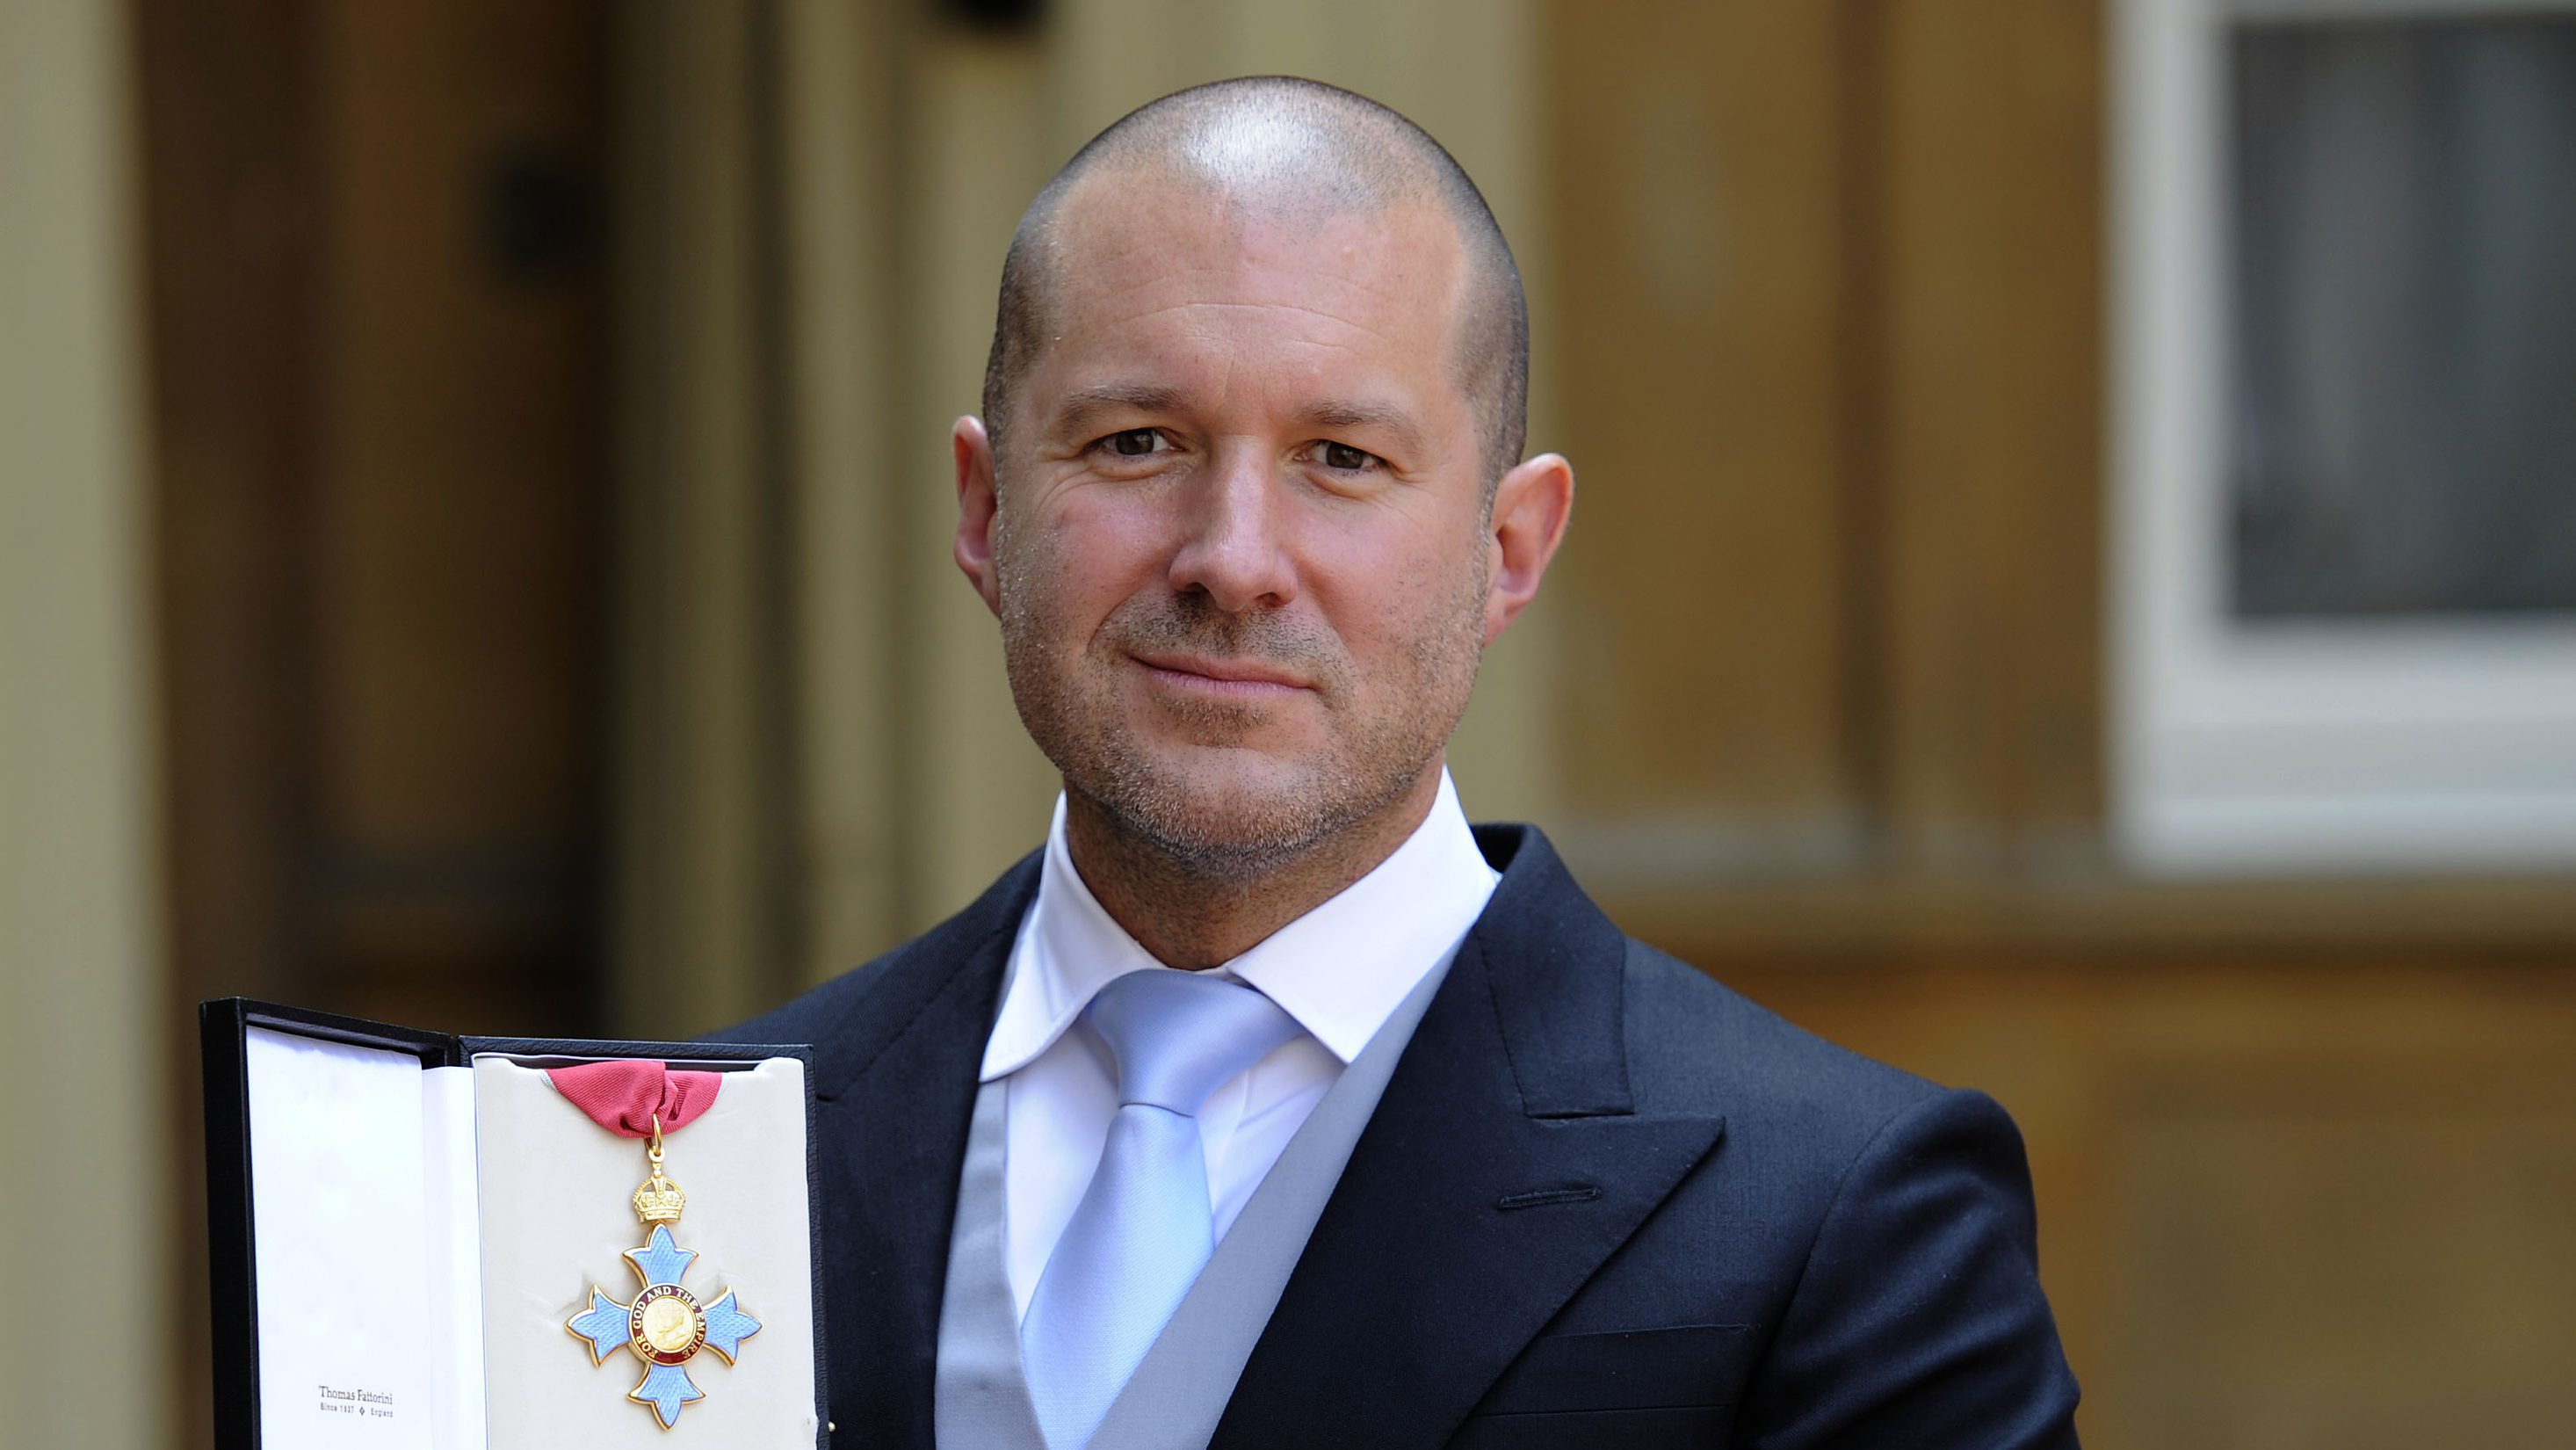 Jonathan Ive, senior vice president of industrial design at Apple Inc poses with his with his Knight Commander of the Order of the British Empire award (KBE) after an investiture ceremony at Buckingham Palace in London May 23, 2012. REUTERS/Rebecca Naden/pool (SOCIETY ROYALS SCIENCE TECHNOLOGY) - RTR32JVC